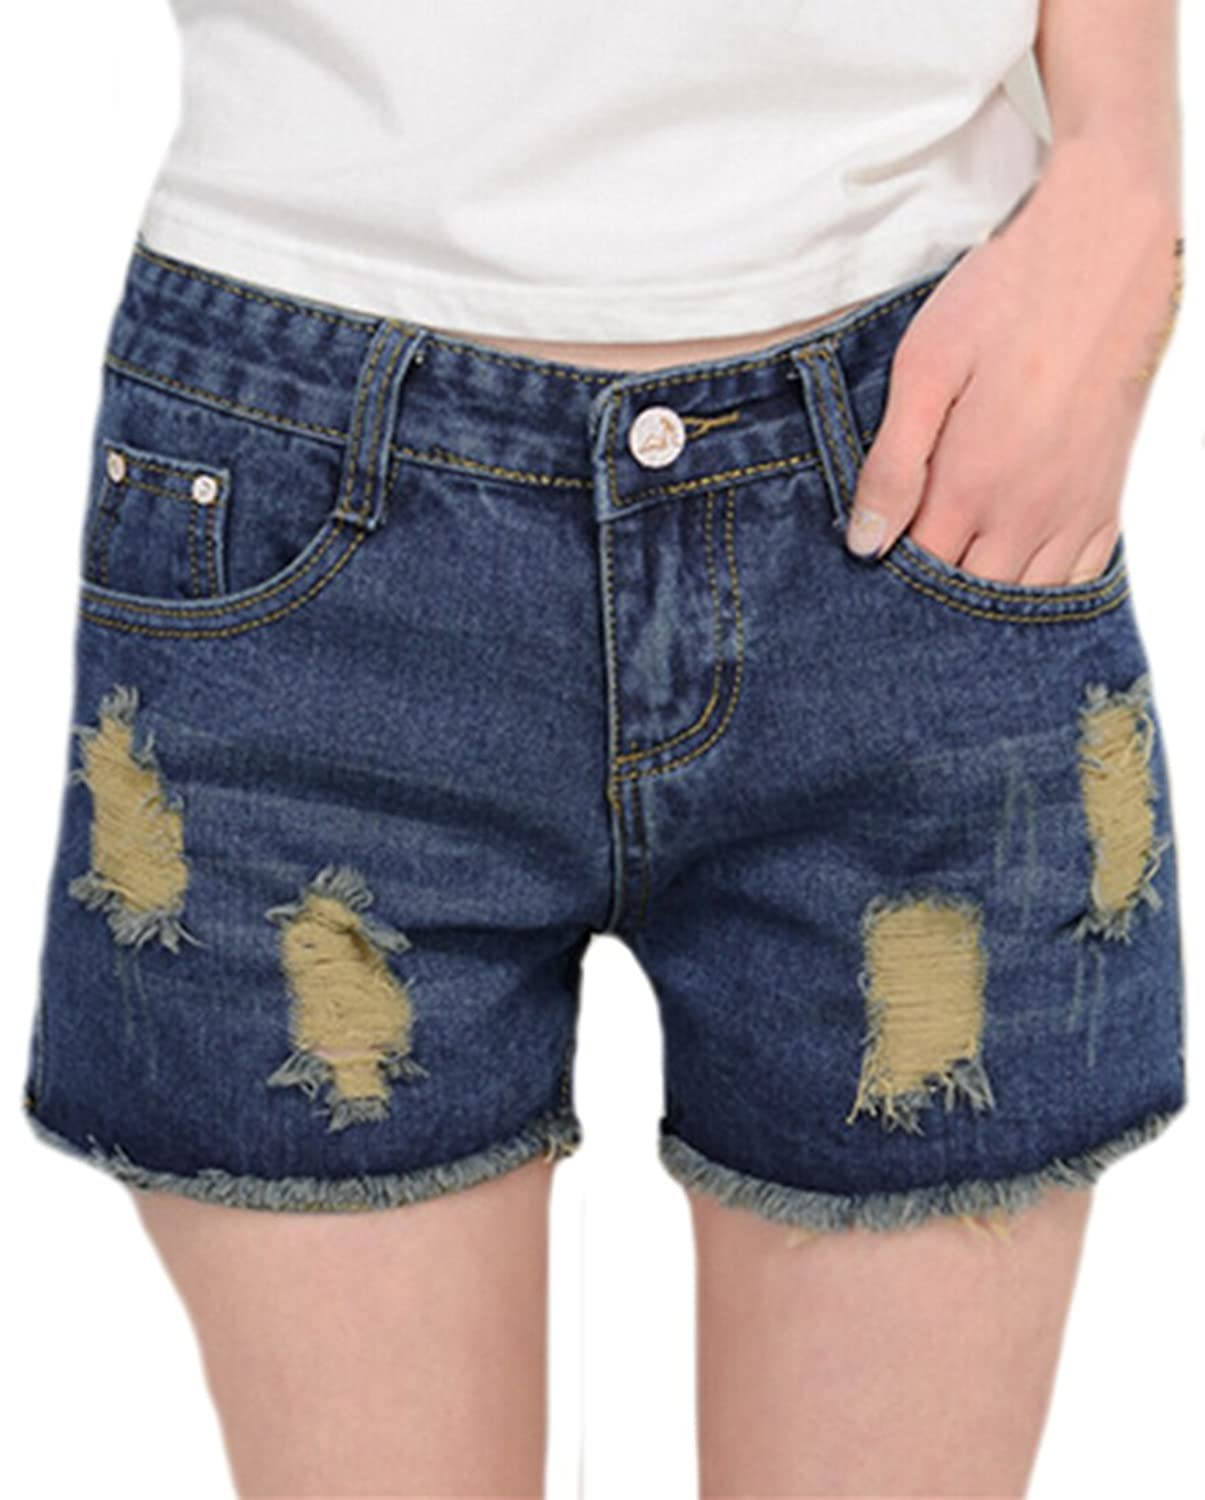 MLG Womens Casual Tassel Trim Ripped Holter Jeans Shorts